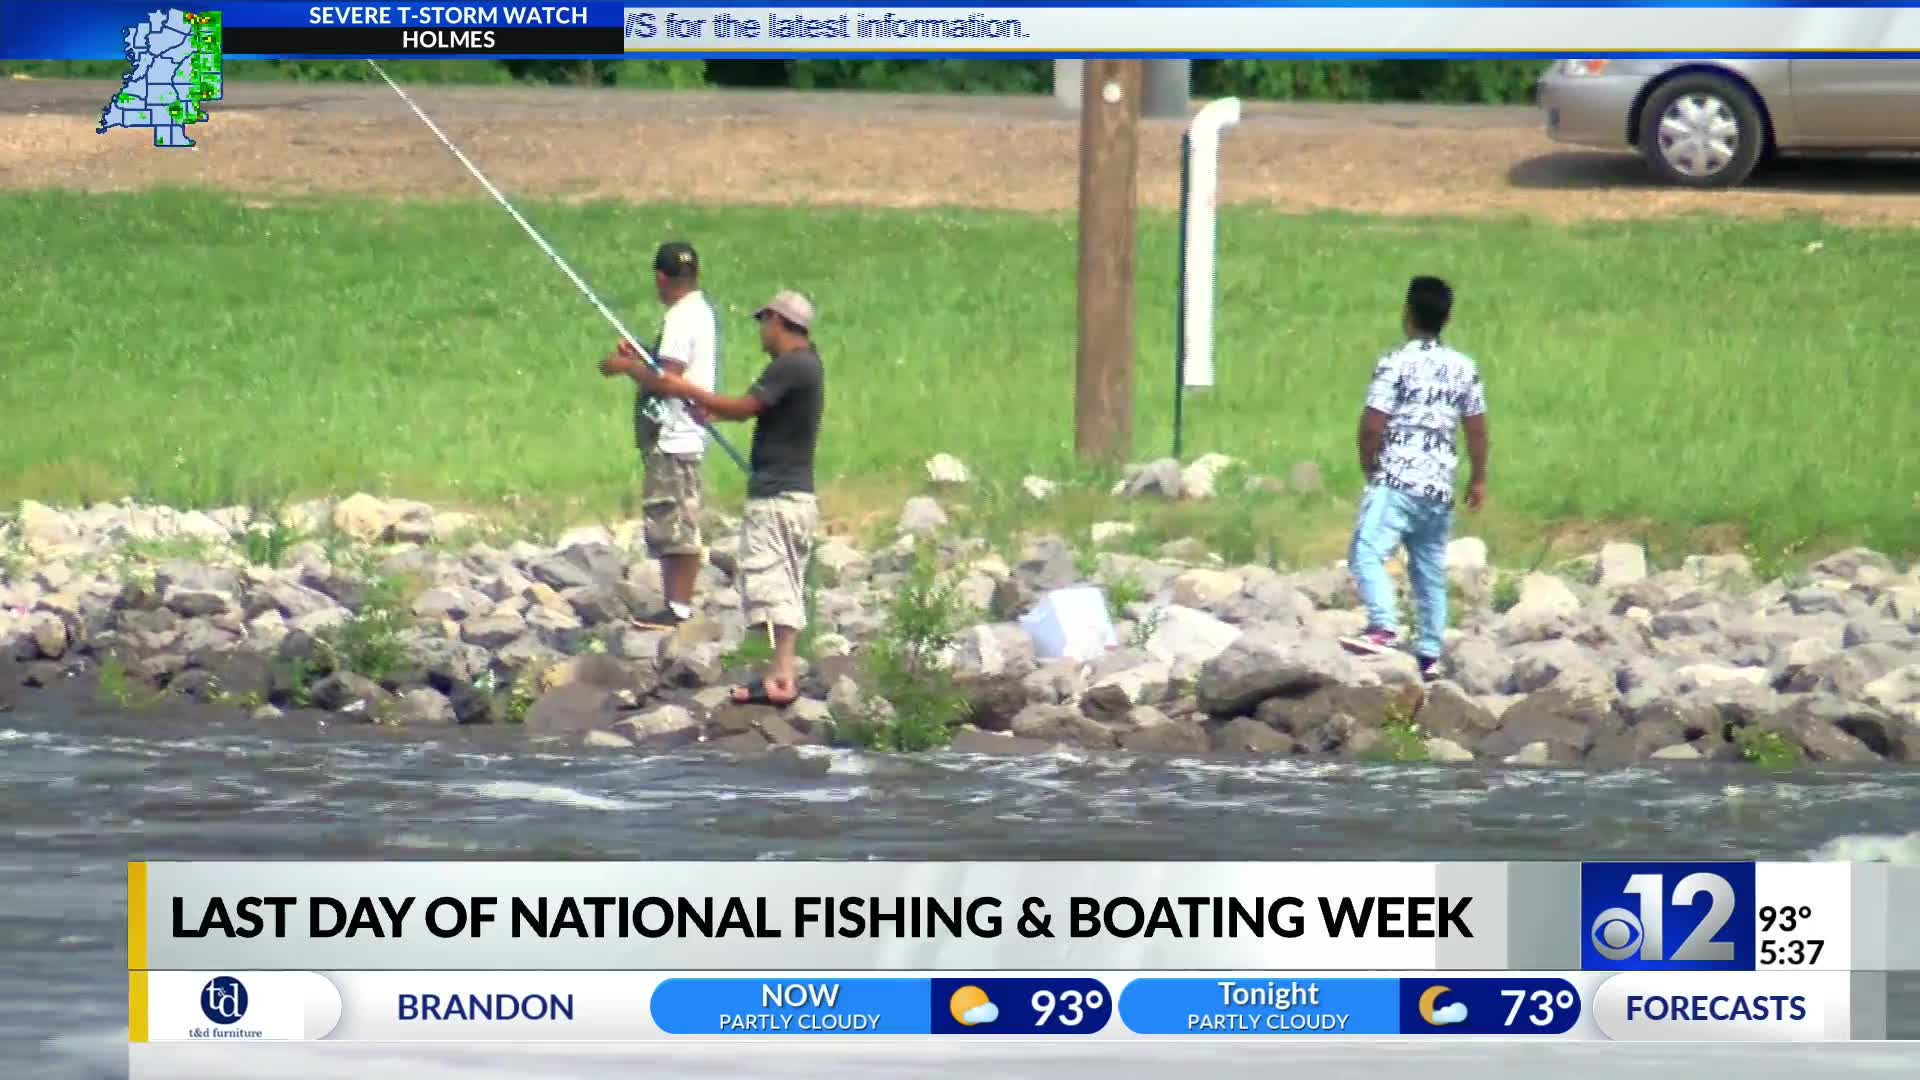 National Fishing and Boating Week comes to an end